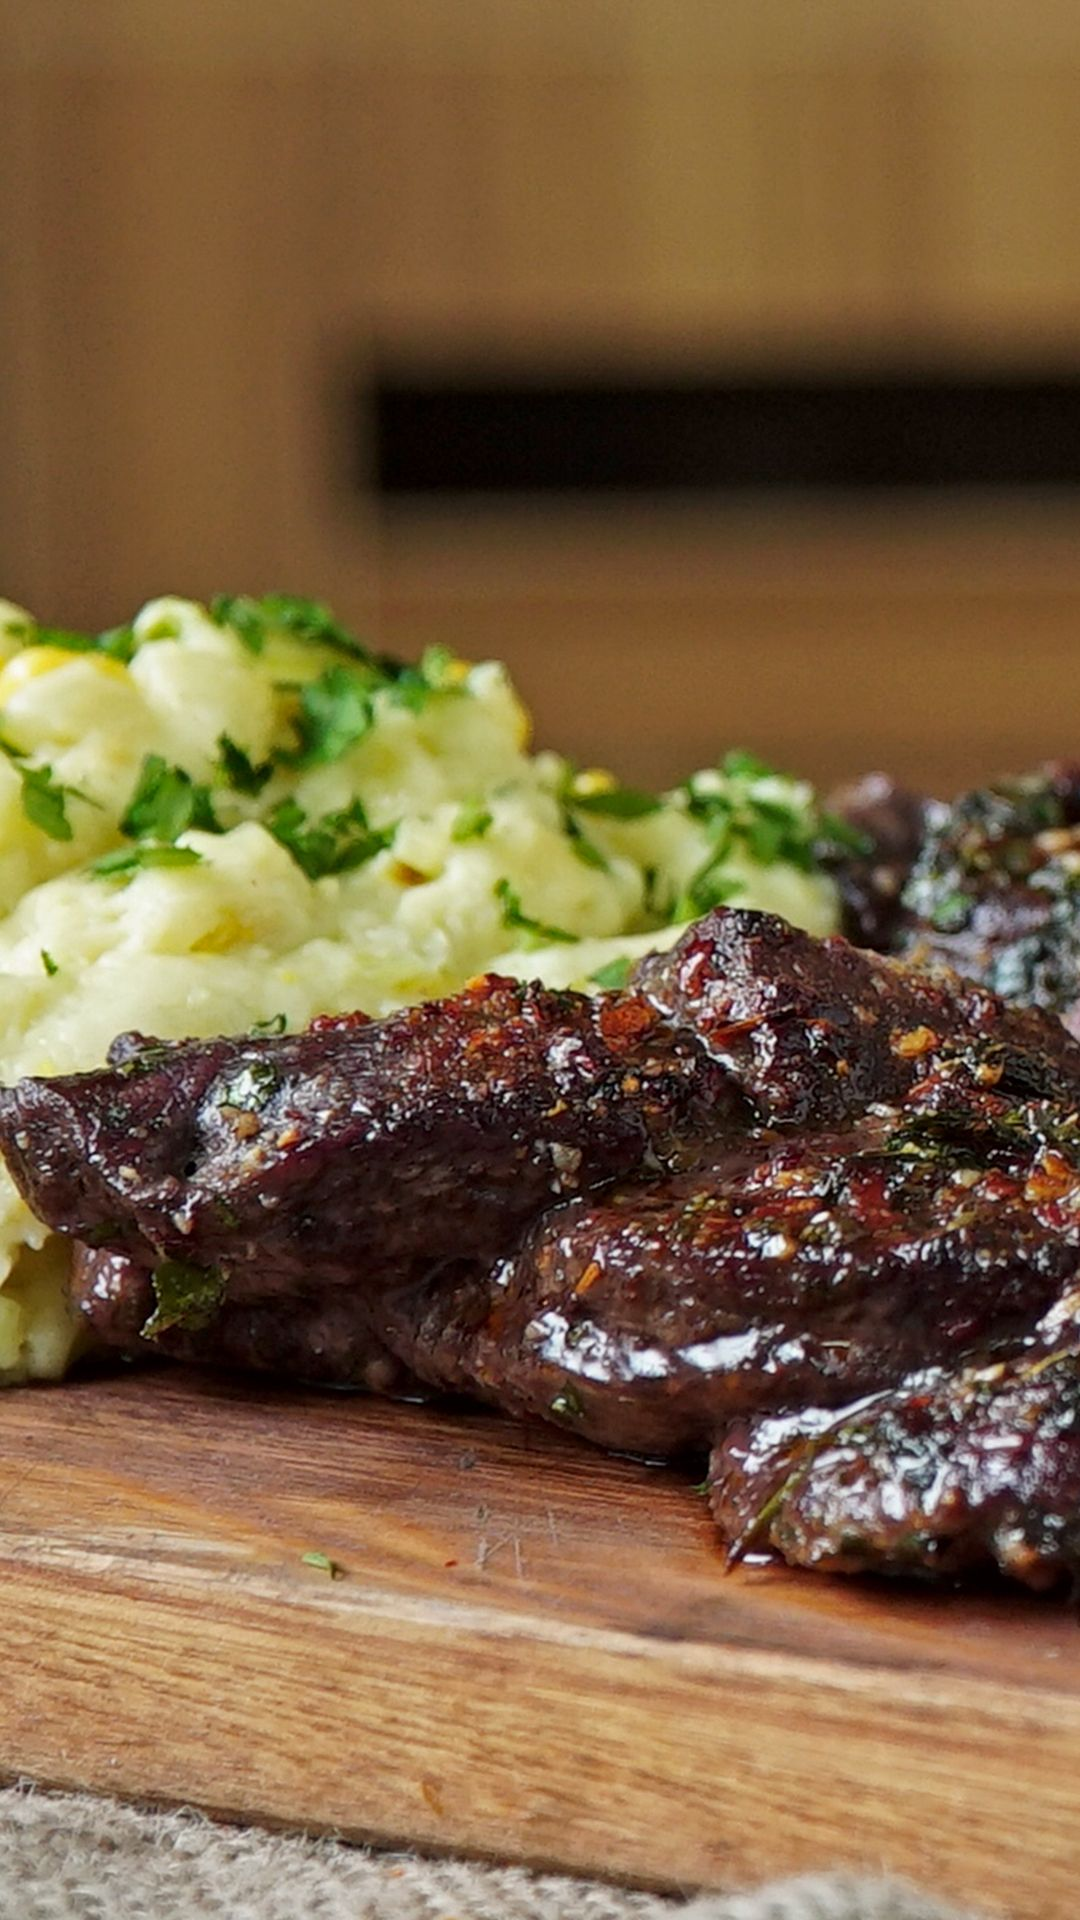 Braided Skirt Steak Thinly sliced and packed with